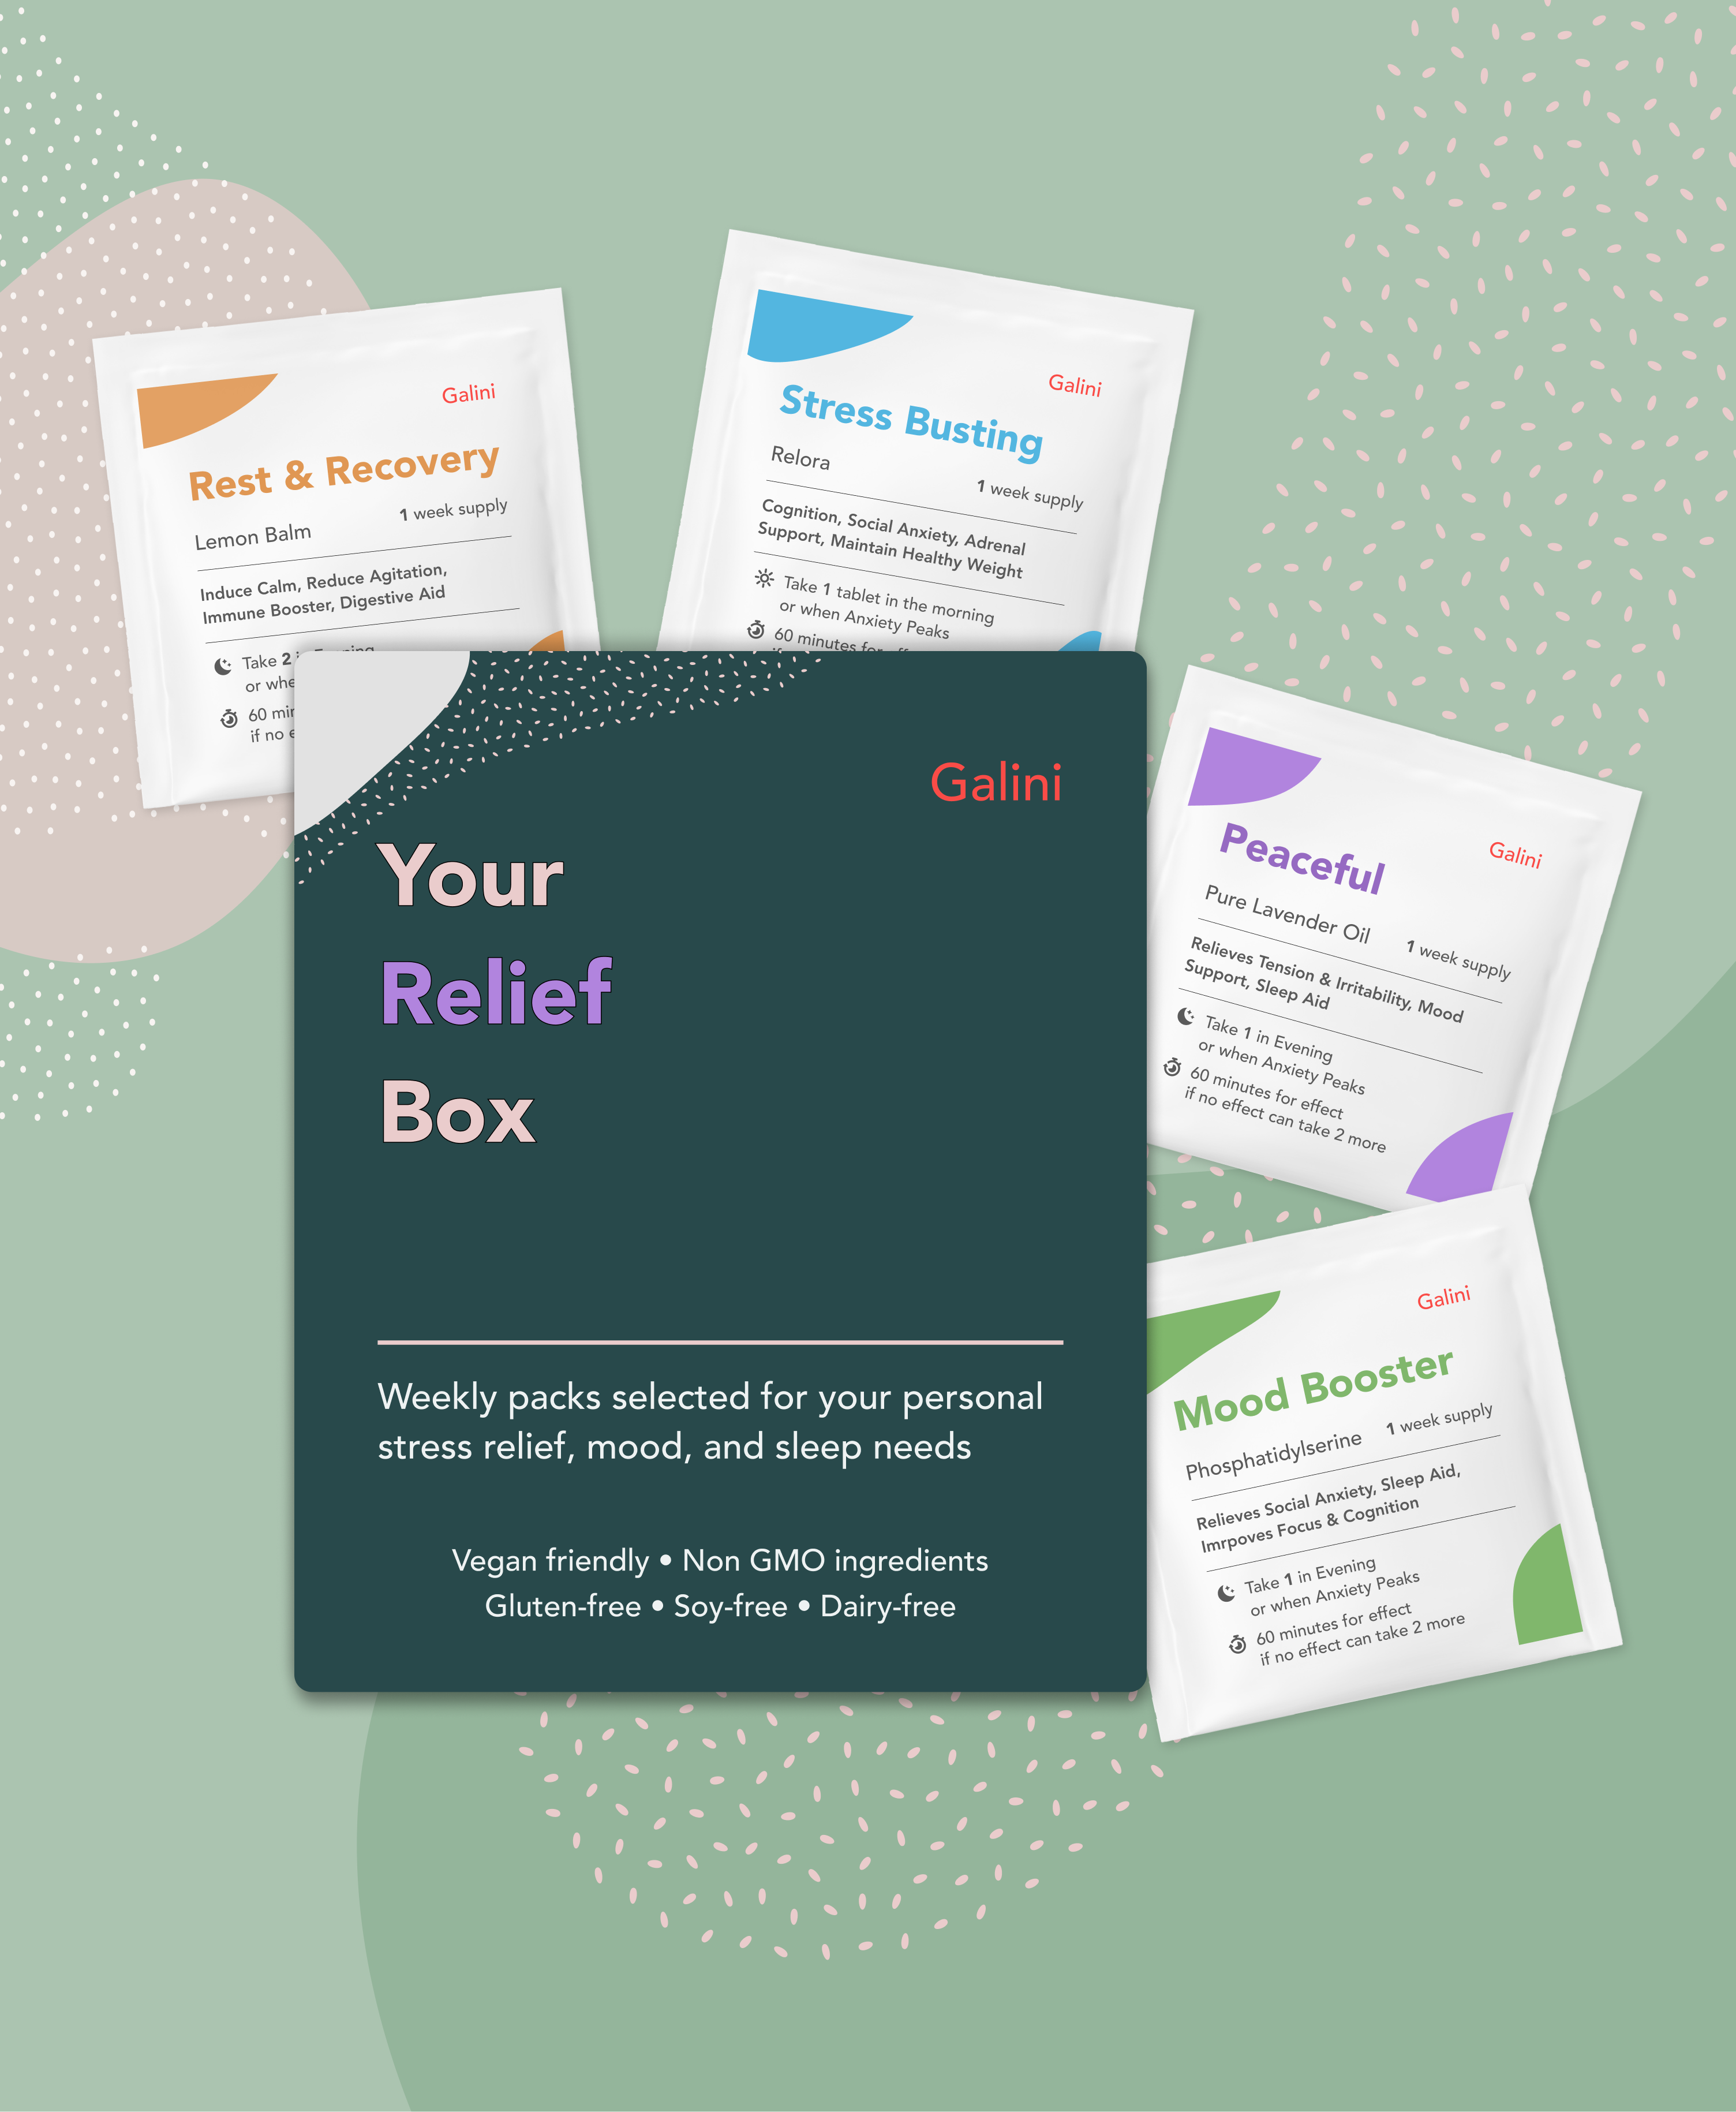 Relief package for stress relief with four weeks supply of supplements